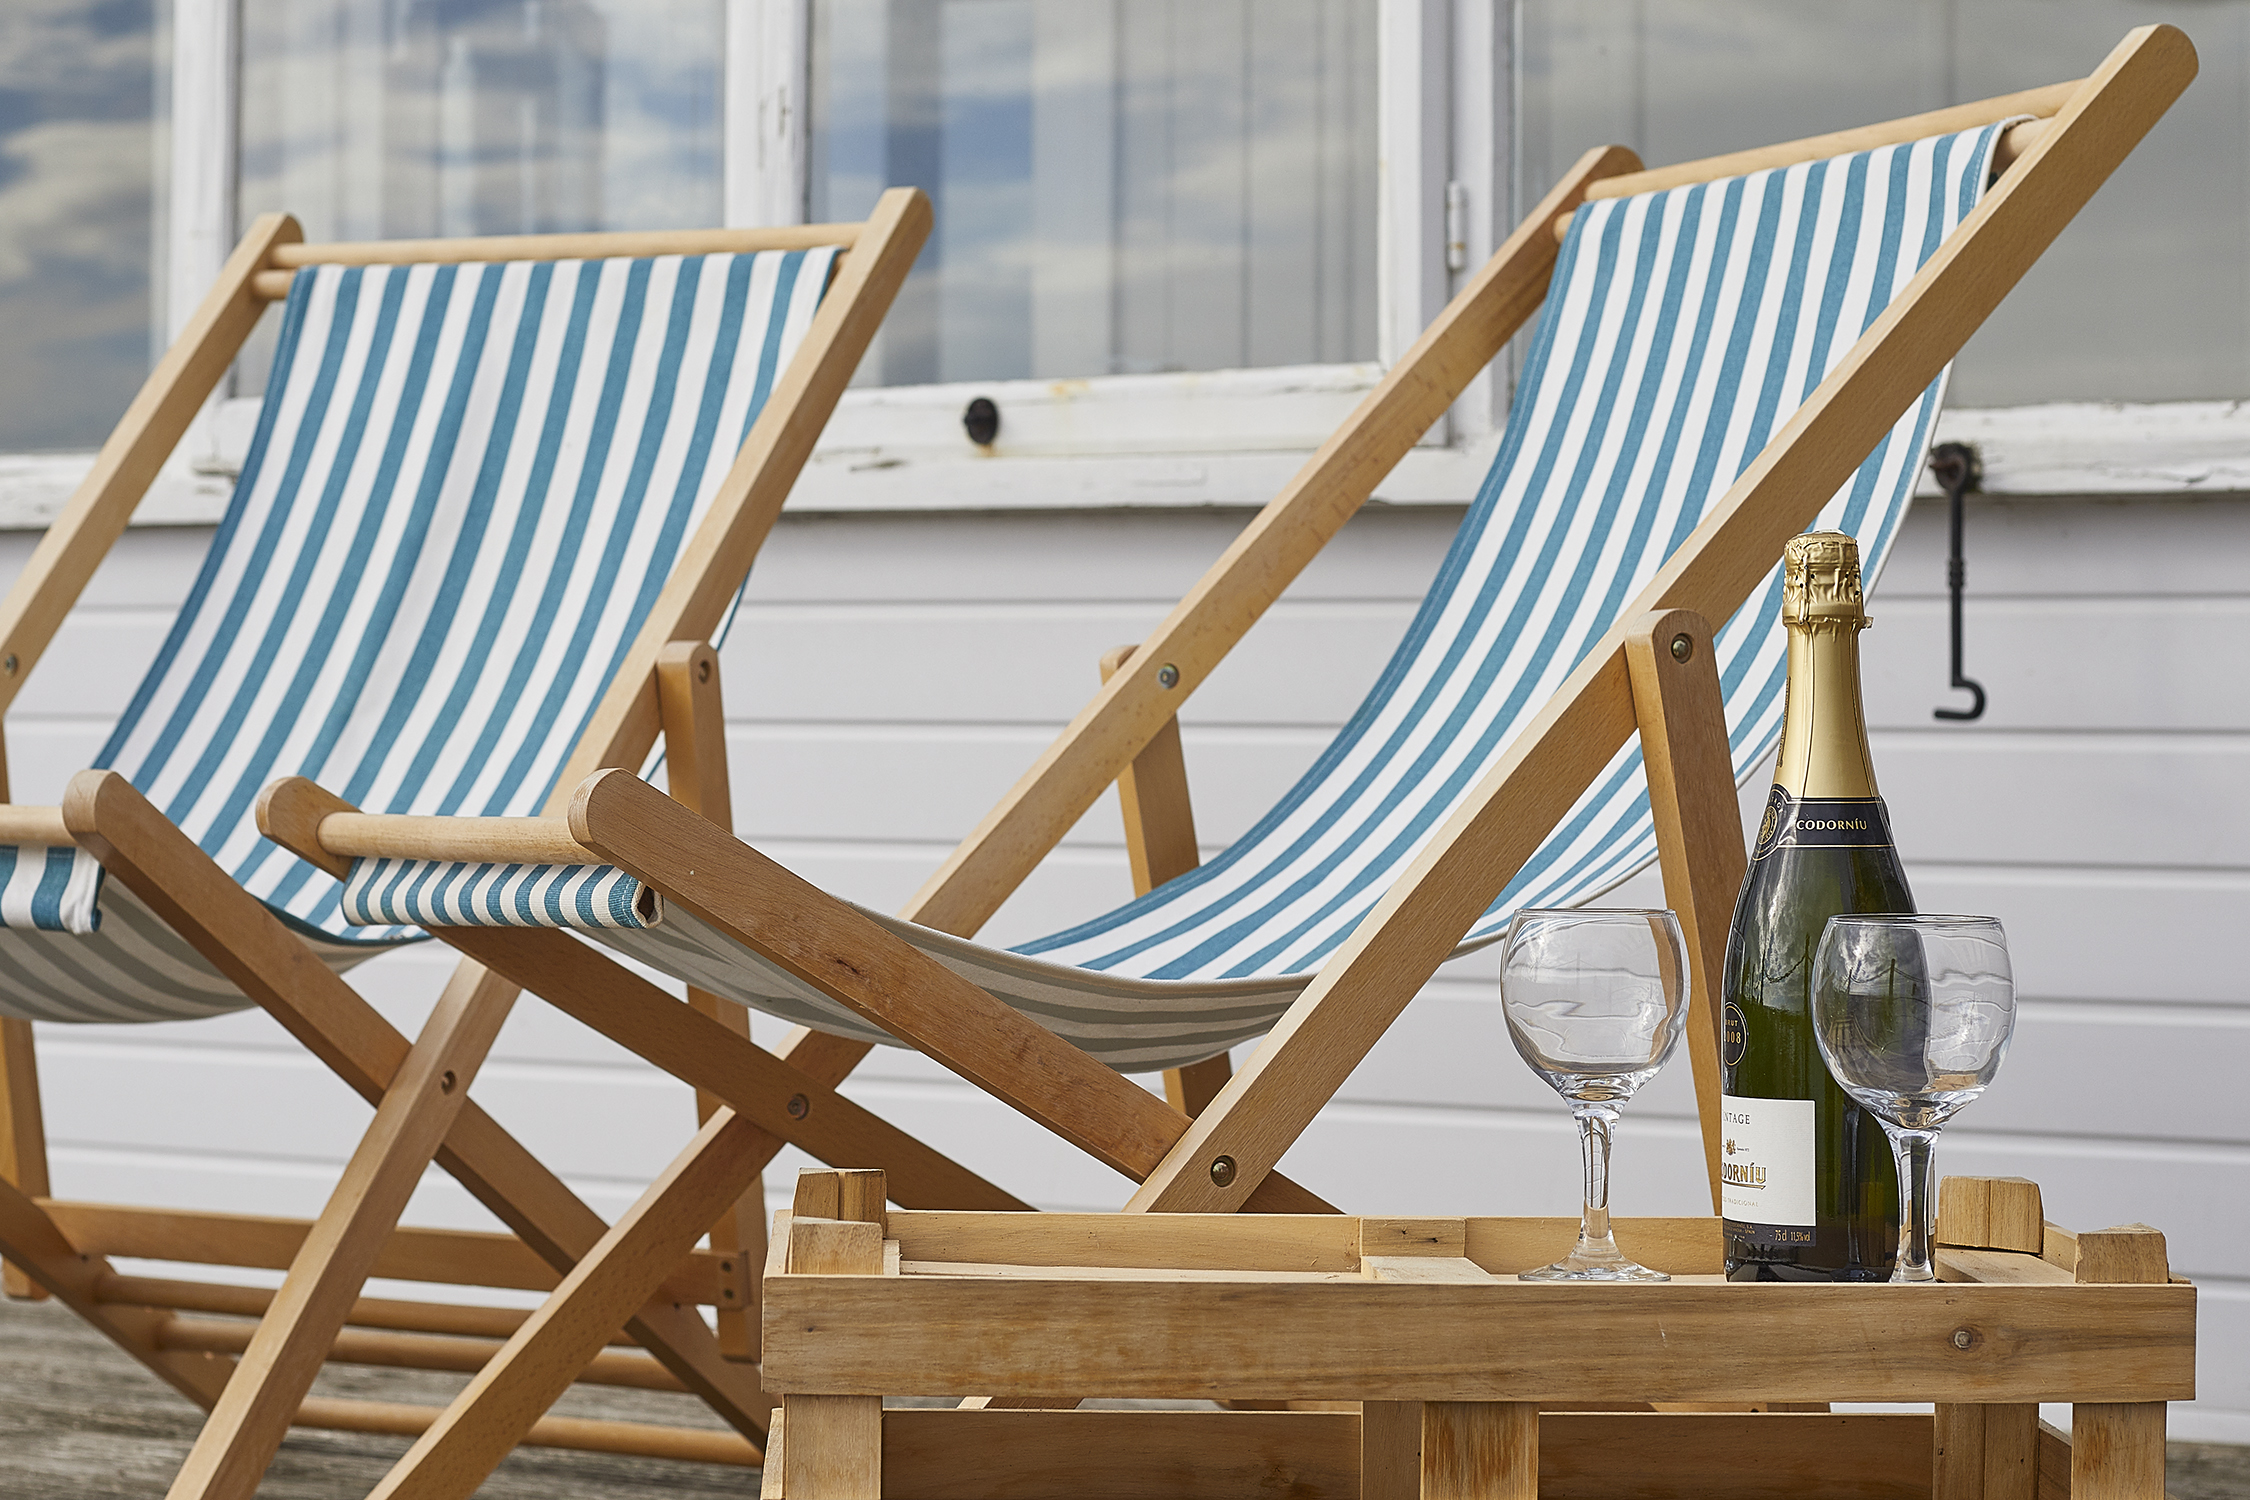 The Bolthole on Pagham Beach - soak up the seaside views - Sussex beach house